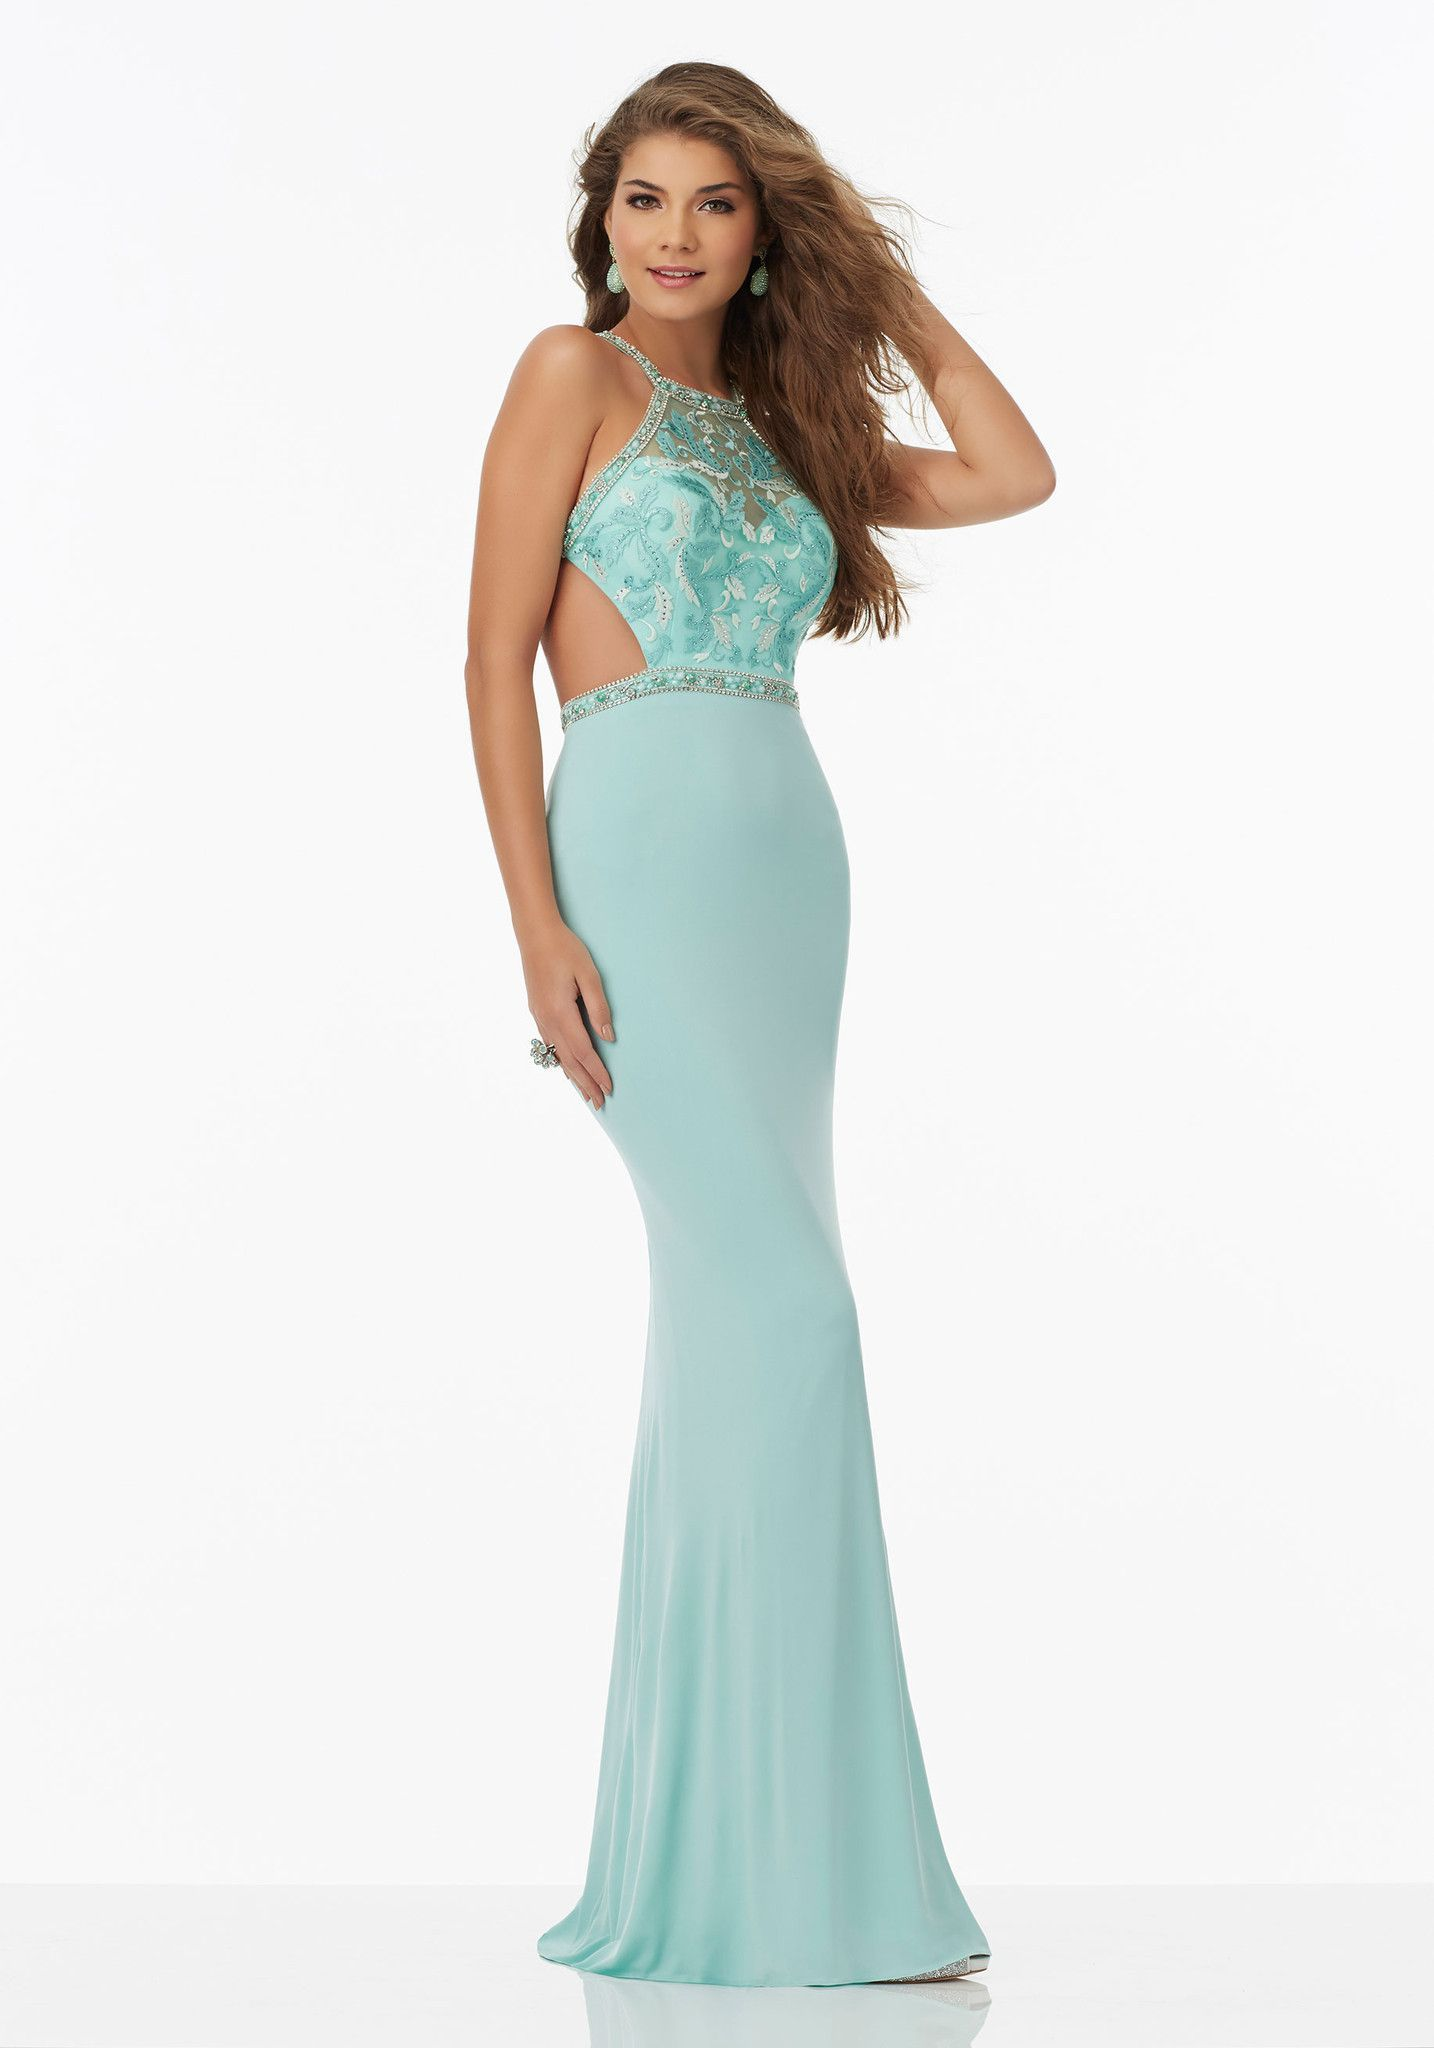 Morilee Prom Dress 99087 | Dresses | Pinterest | Prom, Bodice and ...